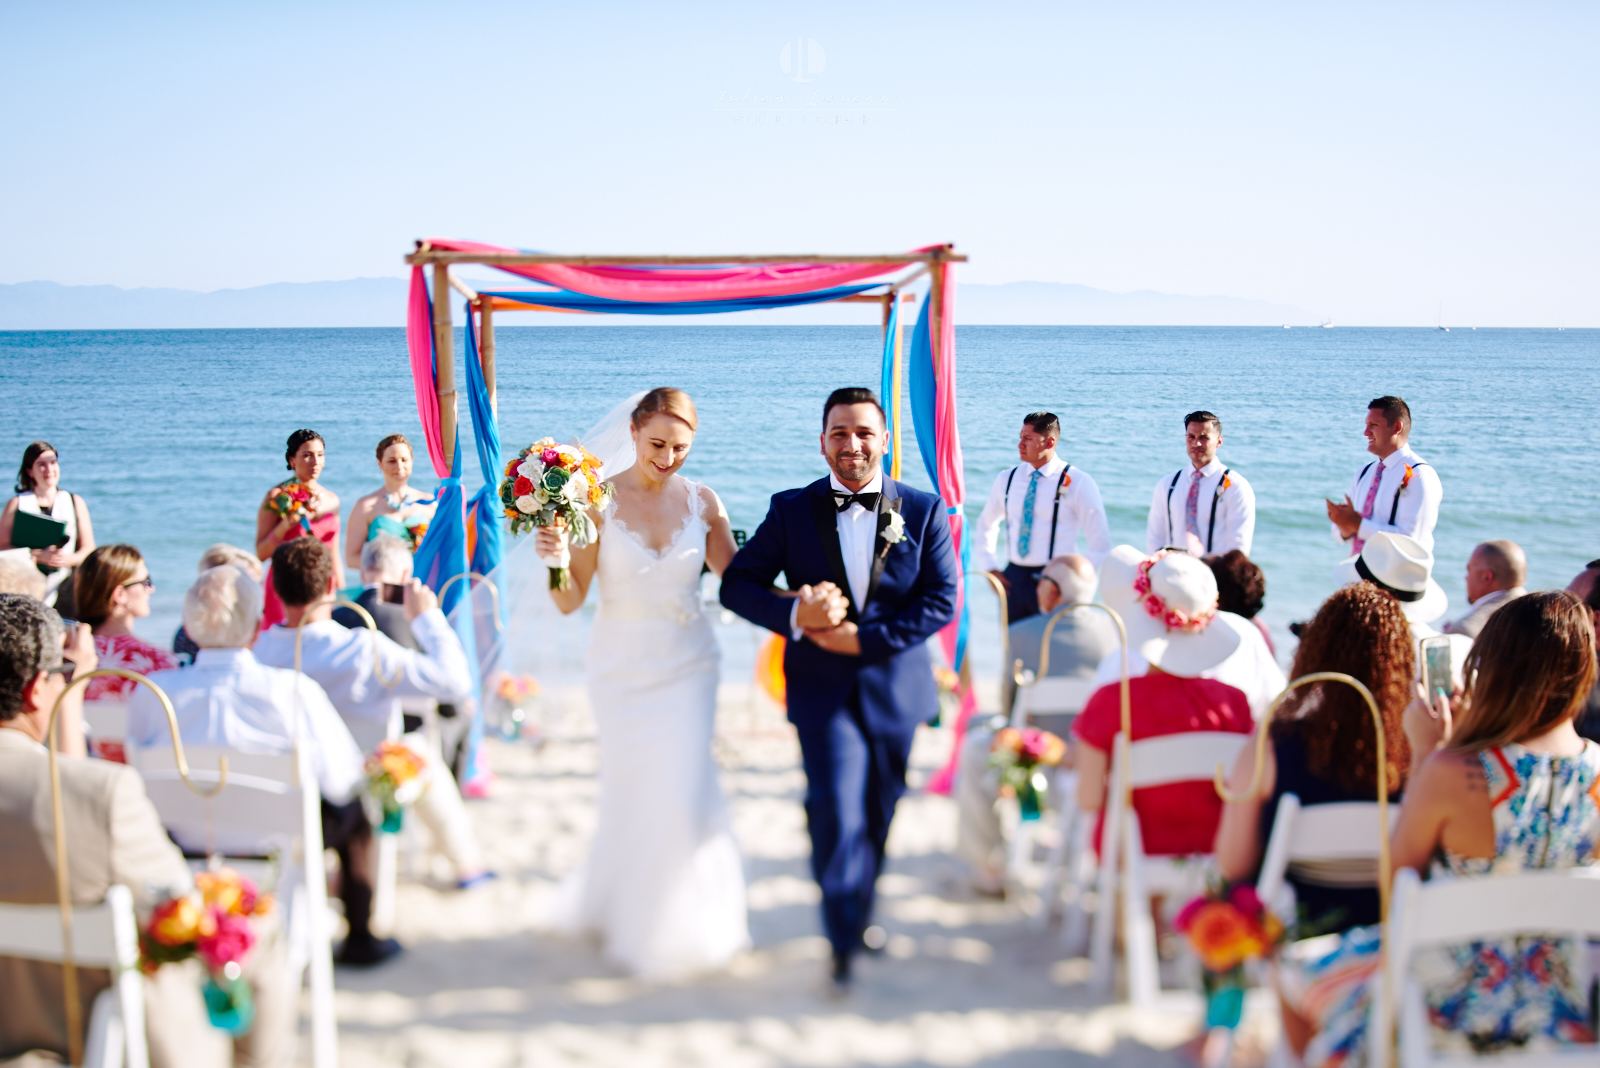 Best wedding venue in Puerto Vallarta